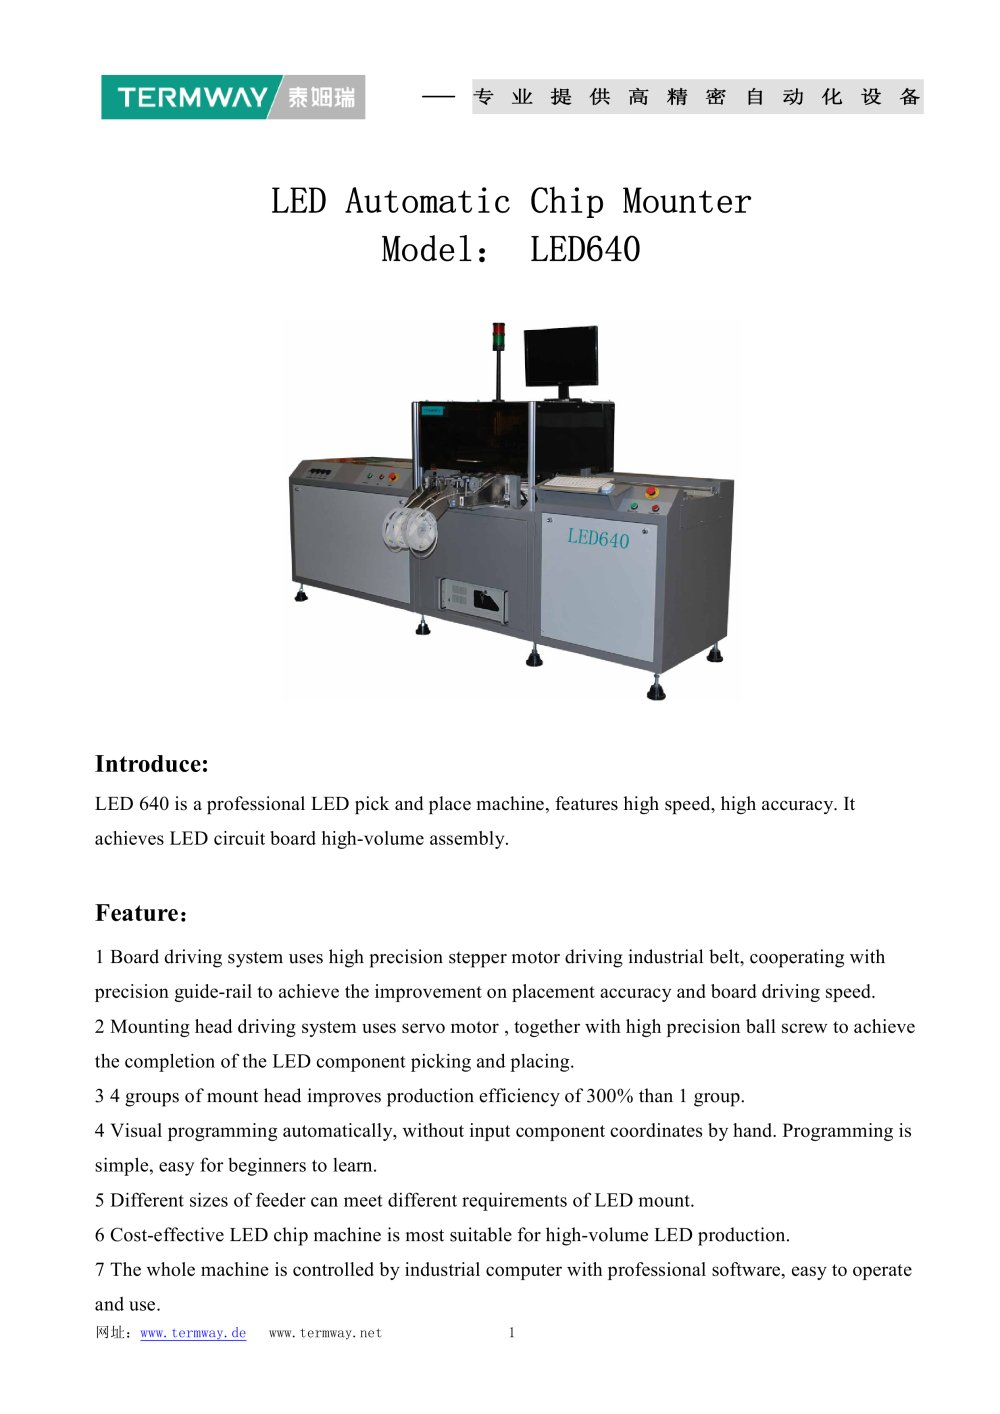 Automatic Led Mounter 4 Heads Beijing Torch Smt Co Ltd Pdf How To Make A Circuit Version 1 3 Pages